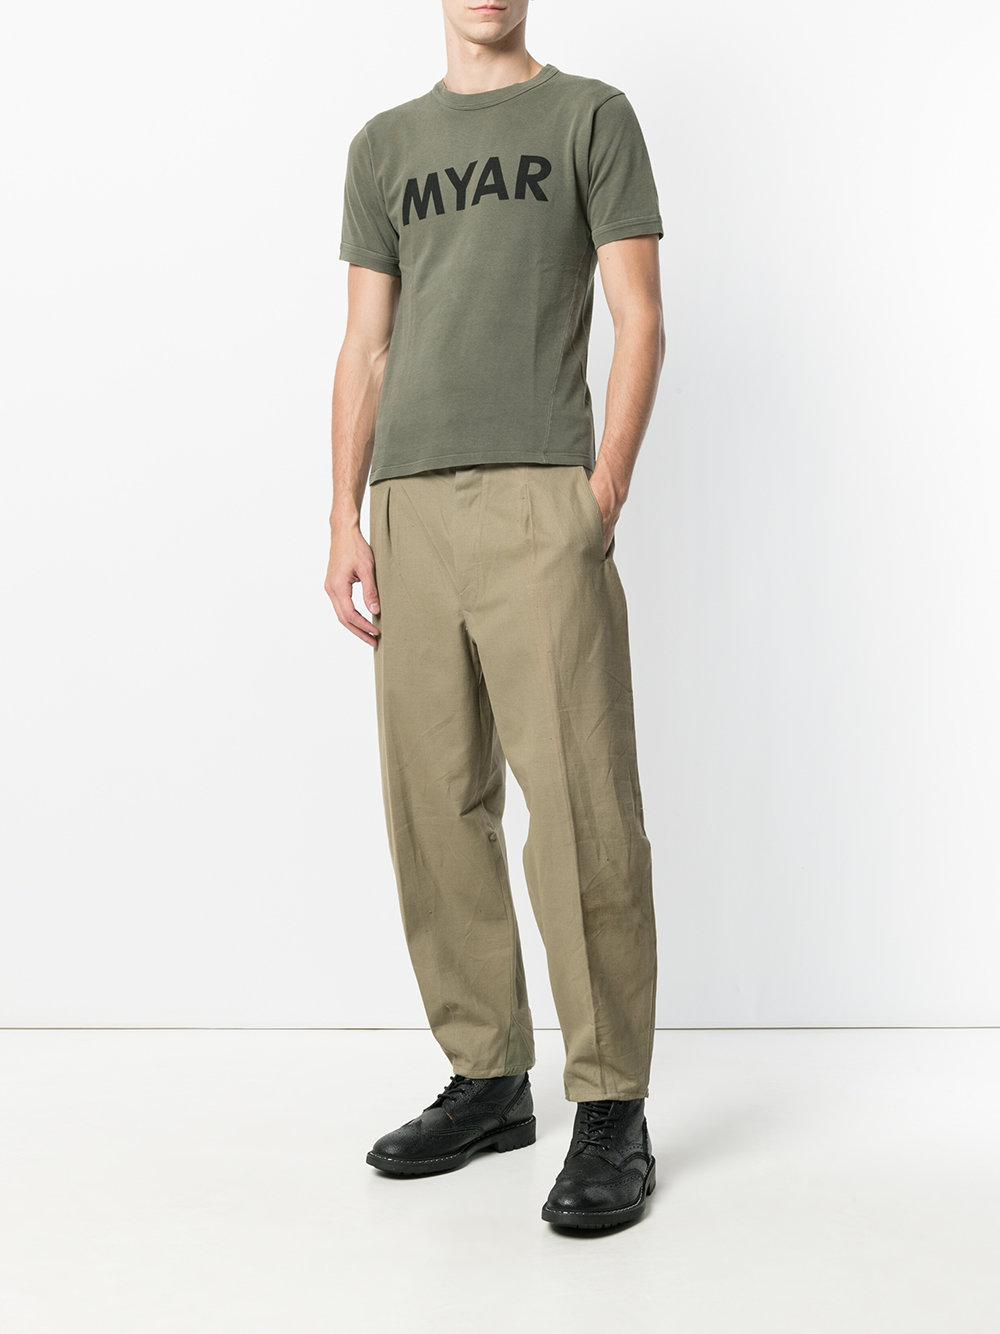 tapered stirrup trousers - Green Myar 57WpsGYF0